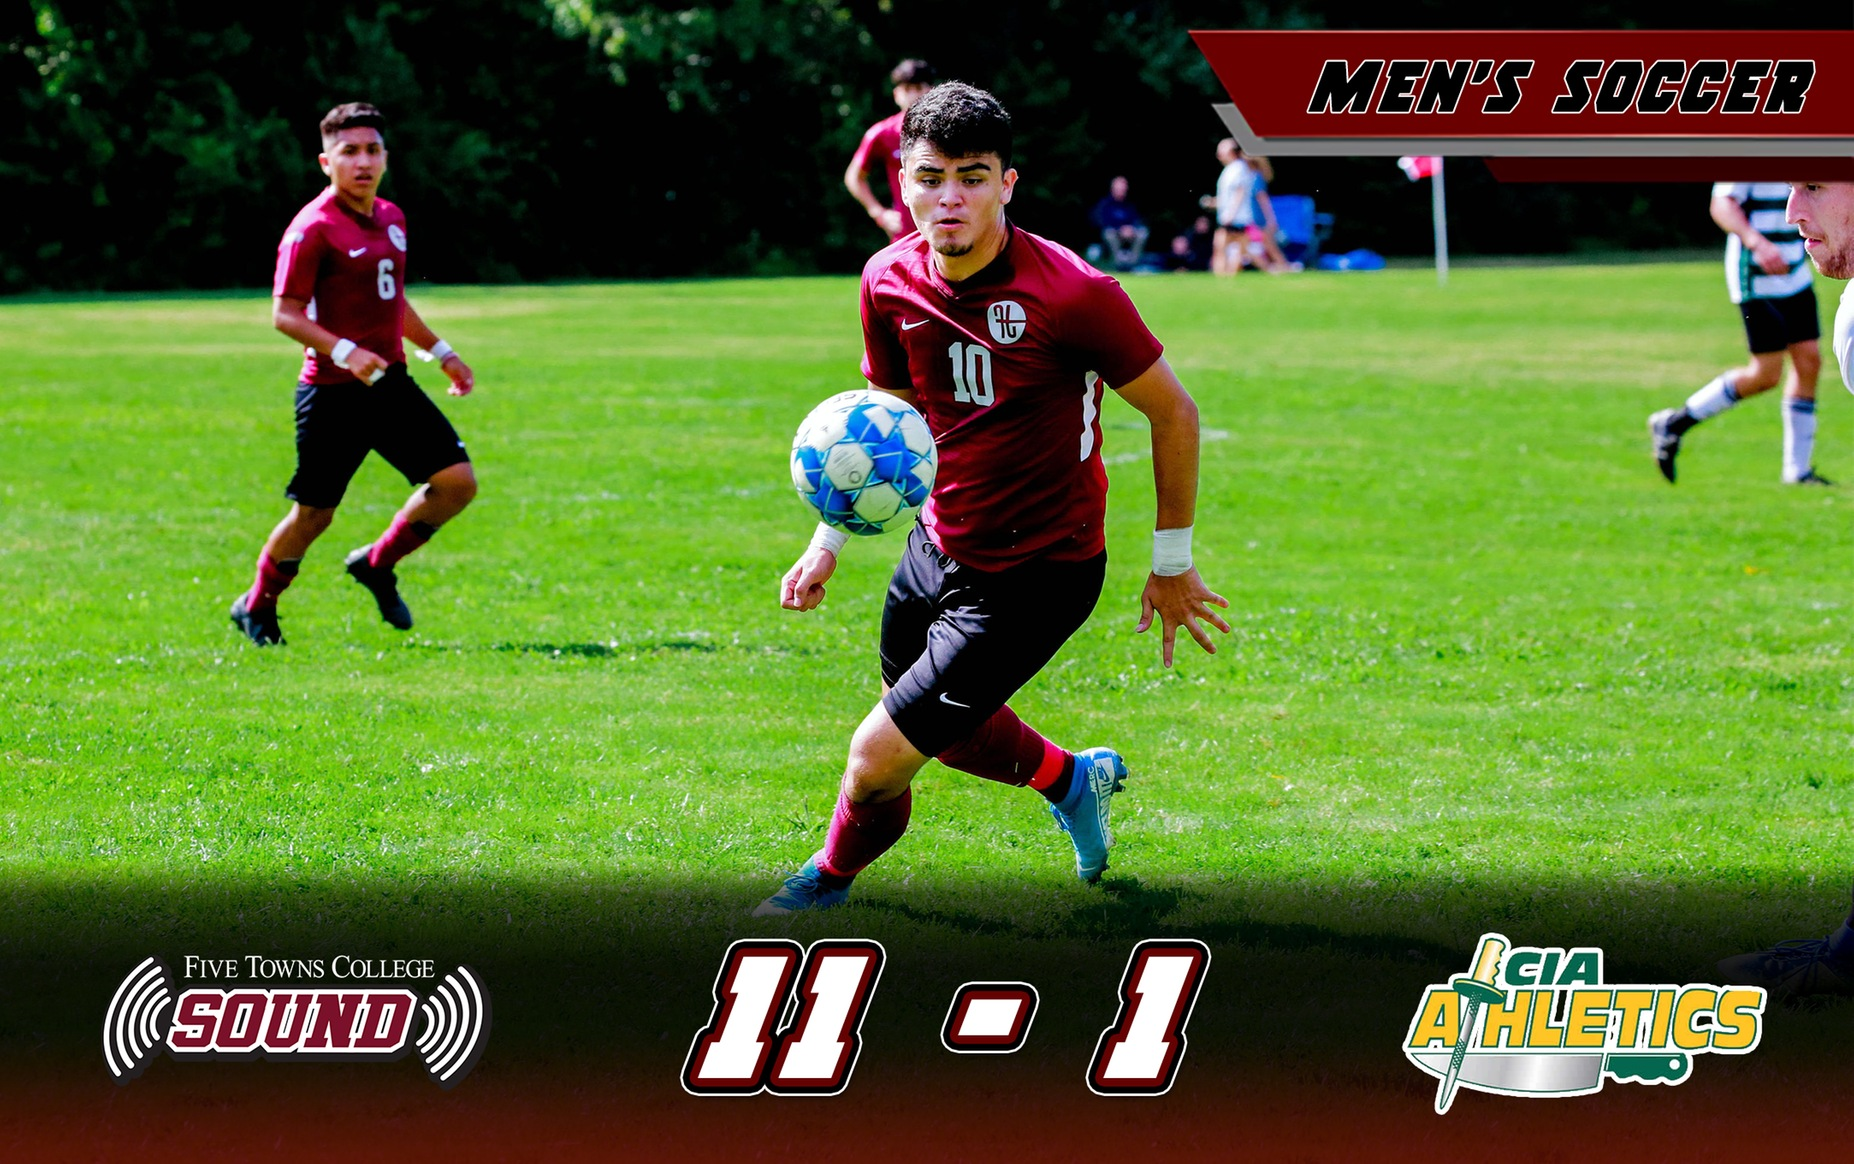 Men's Soccer Victorious Over Culinary